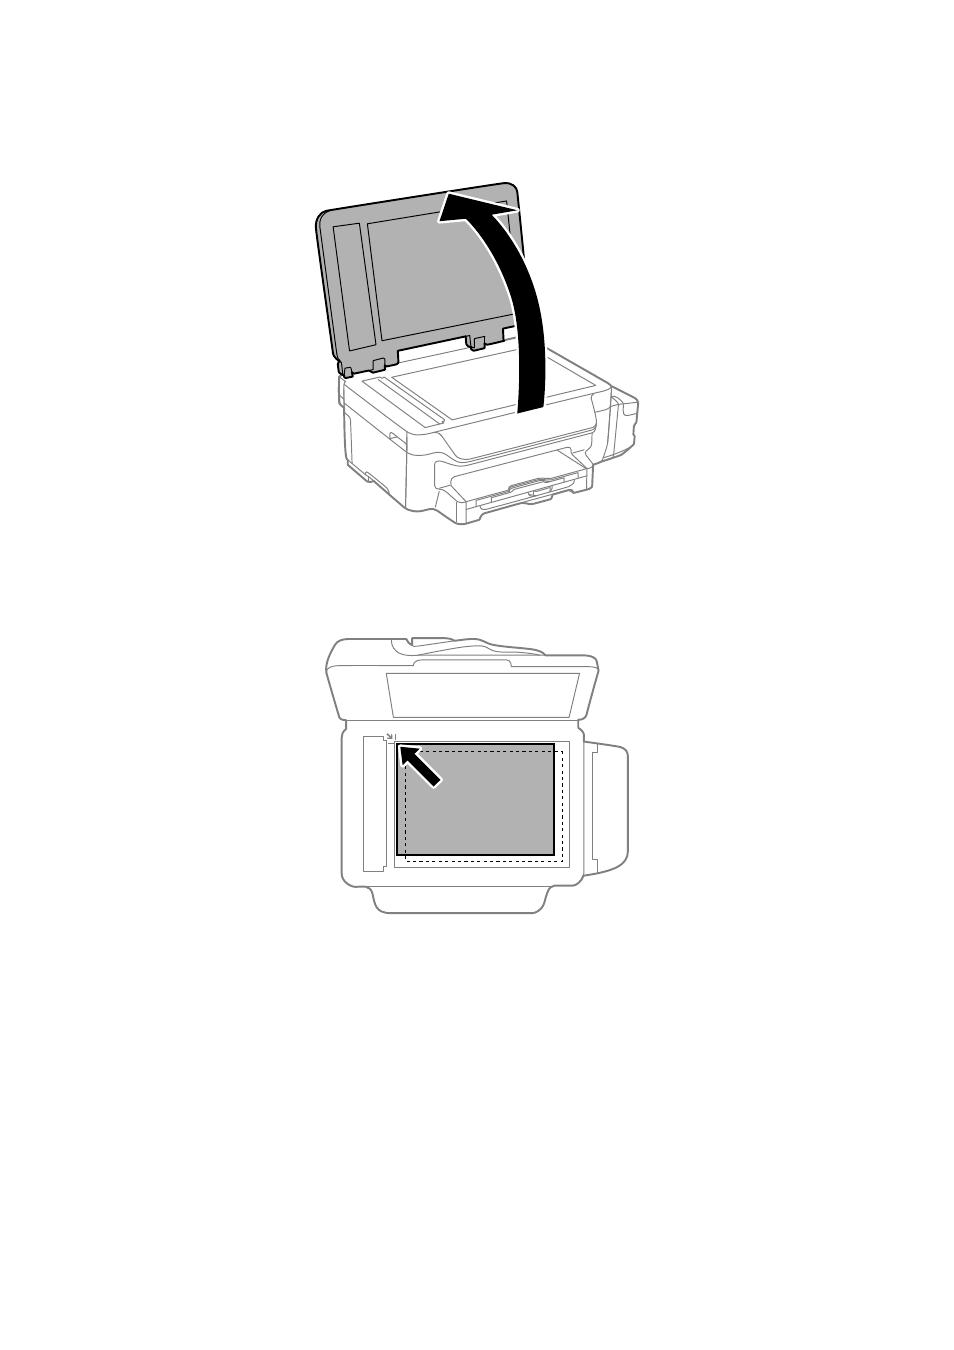 Epson EcoTank ET-4550 User Manual | Page 33 / 145 | Also for: L655